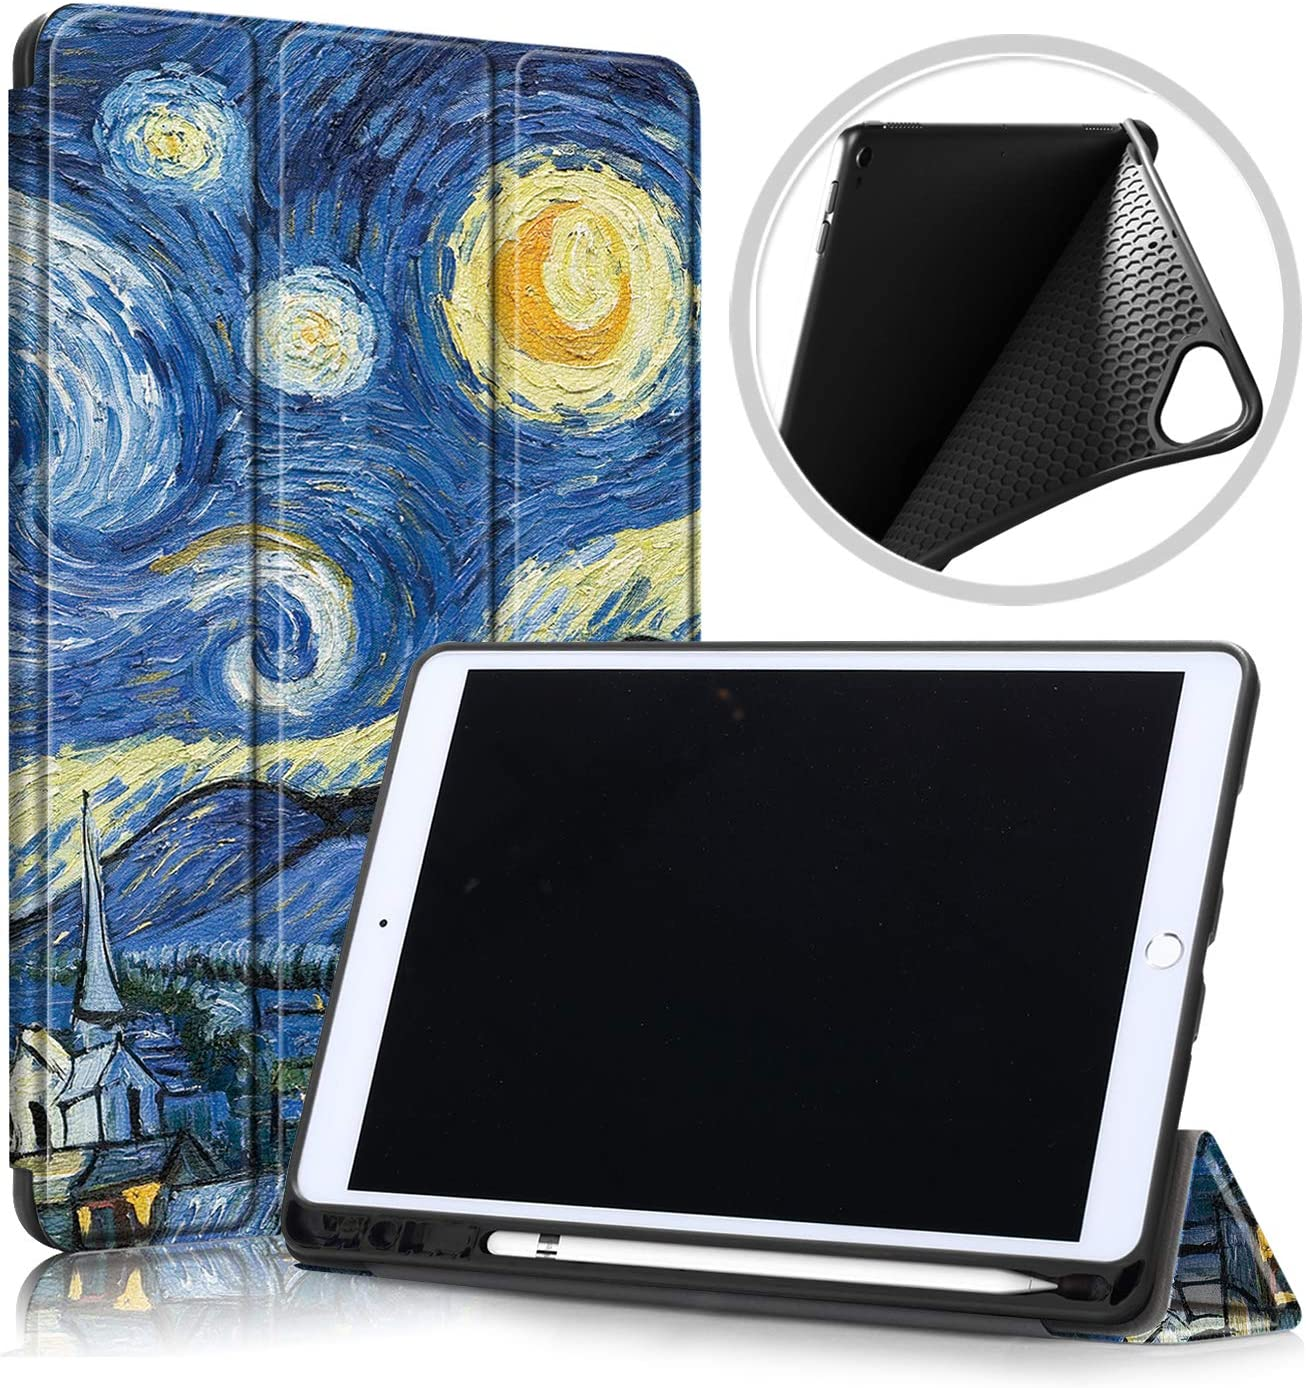 UUcovers Smart Case for Apple iPad 10.2 inch 2019 iPad 7th Generation, Van Gogh Canvas PU Leather Shockproof TPU Back Trifold Shell Stand Folio Cover with Pencil Holder [Auto Wake/Sleep], Starry Night